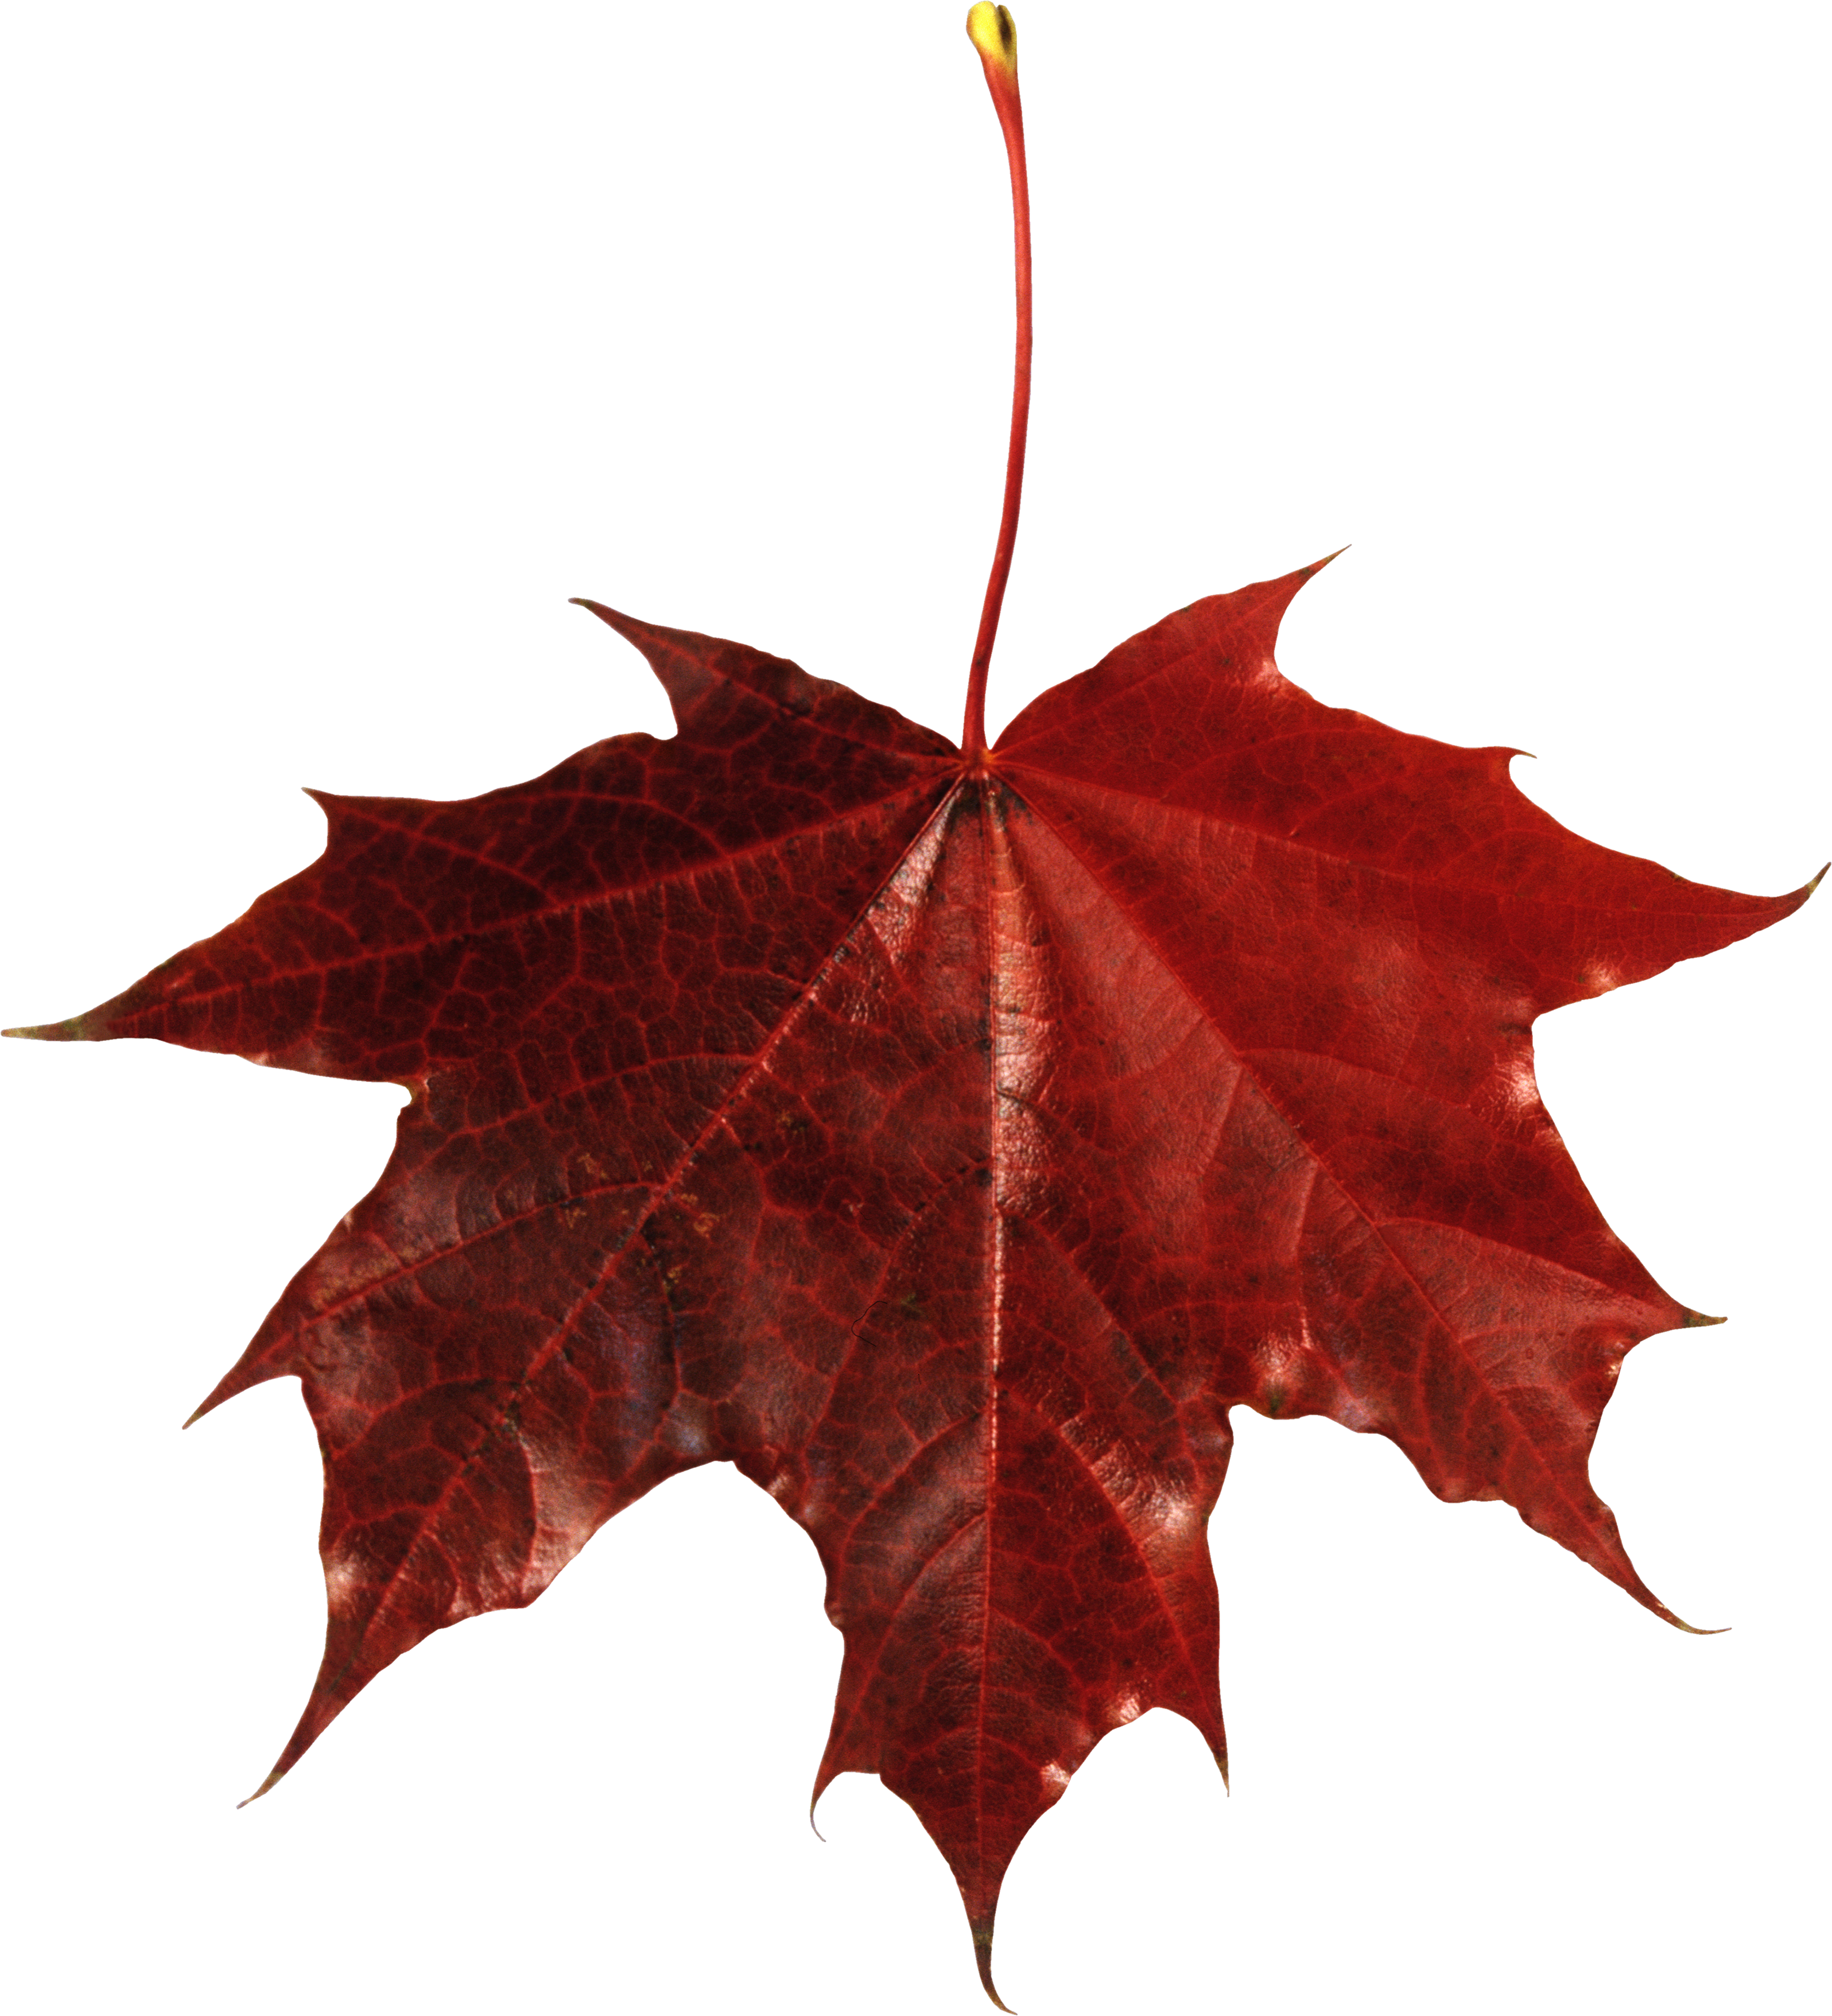 Red Leaves, Autumn, Spring, Winter, Seasons, Leaf, Png 5883